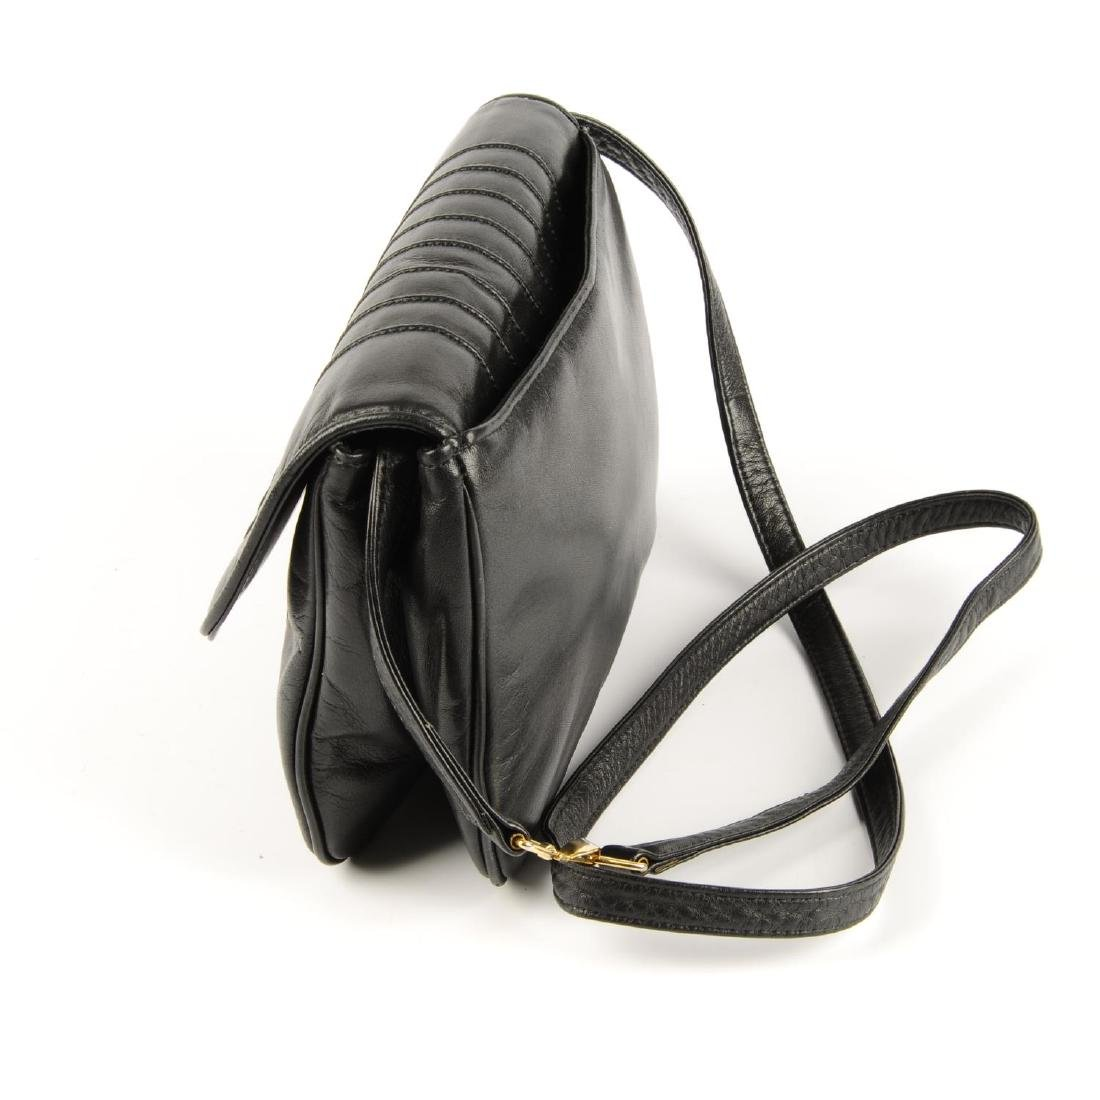 VALENTINO - a vintage leather crossbody handbag. - 3